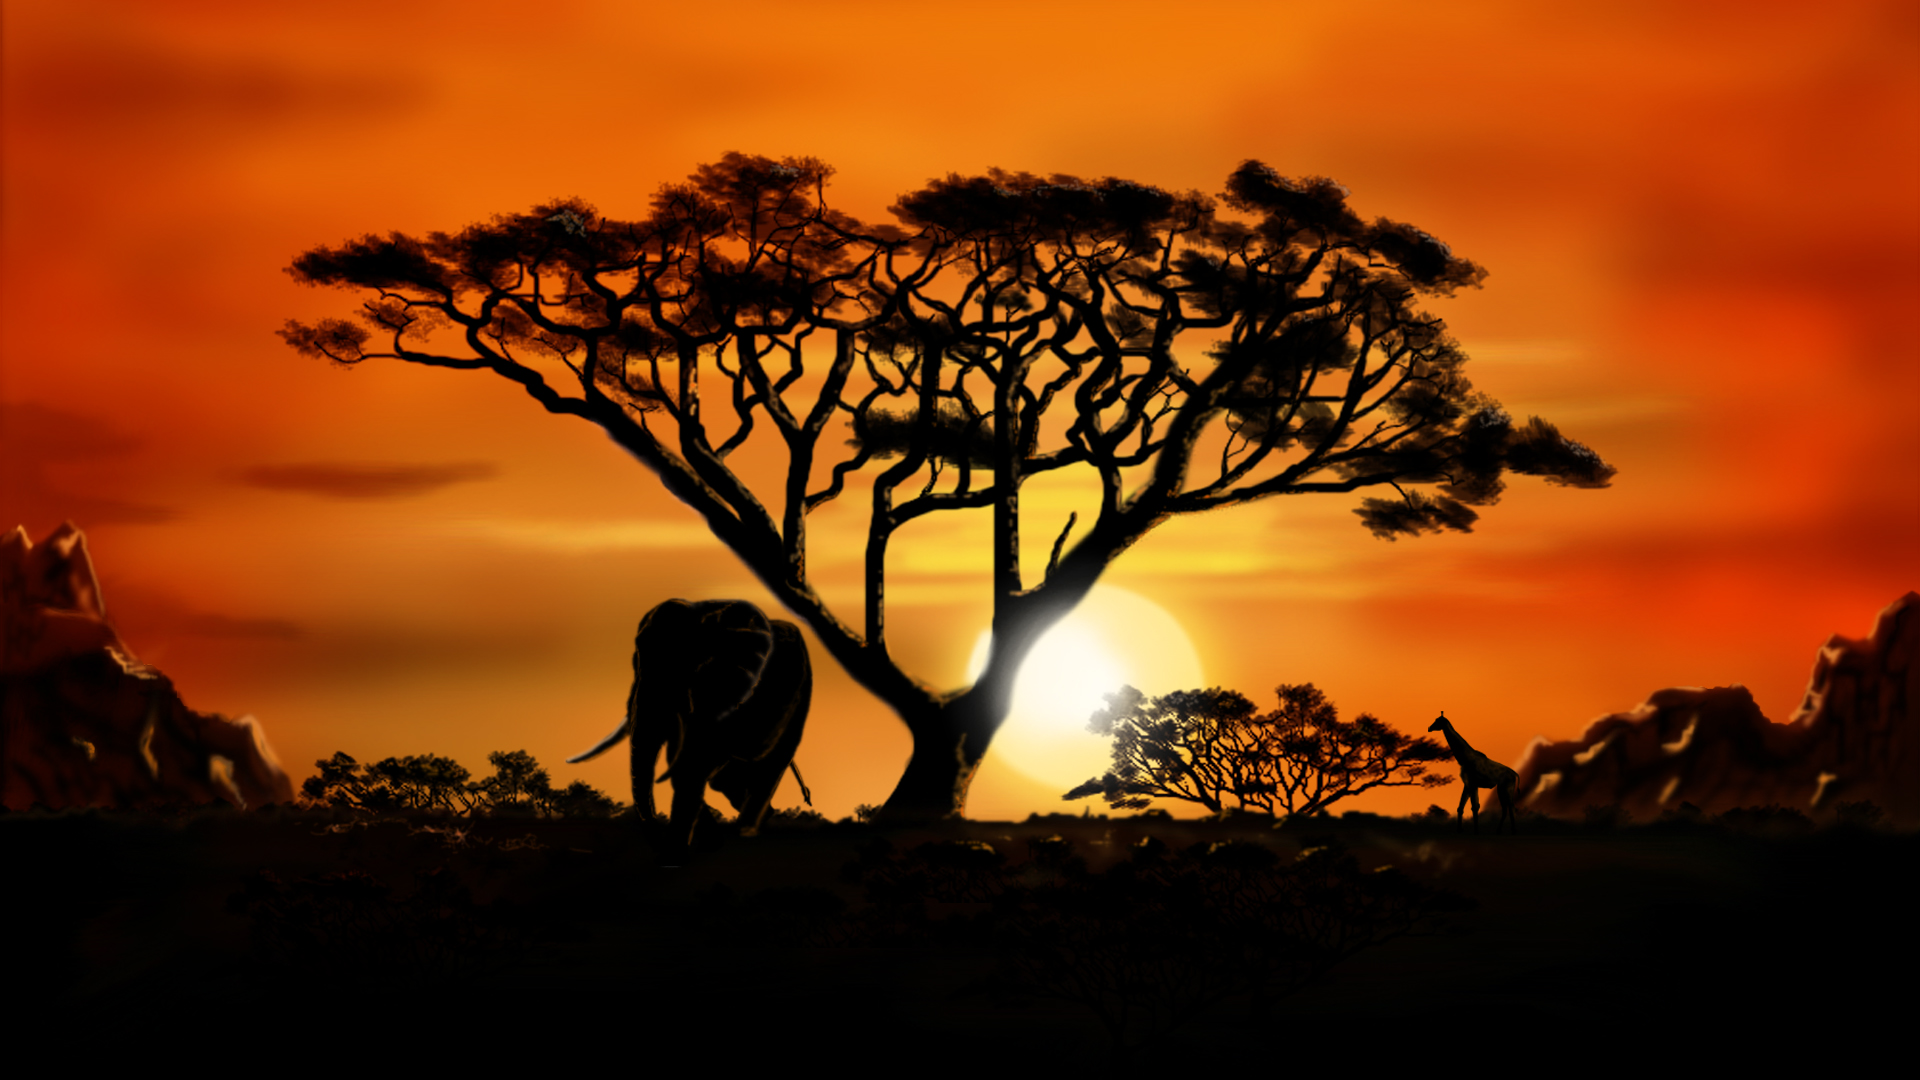 african scenery wallpaper for computer - photo #1